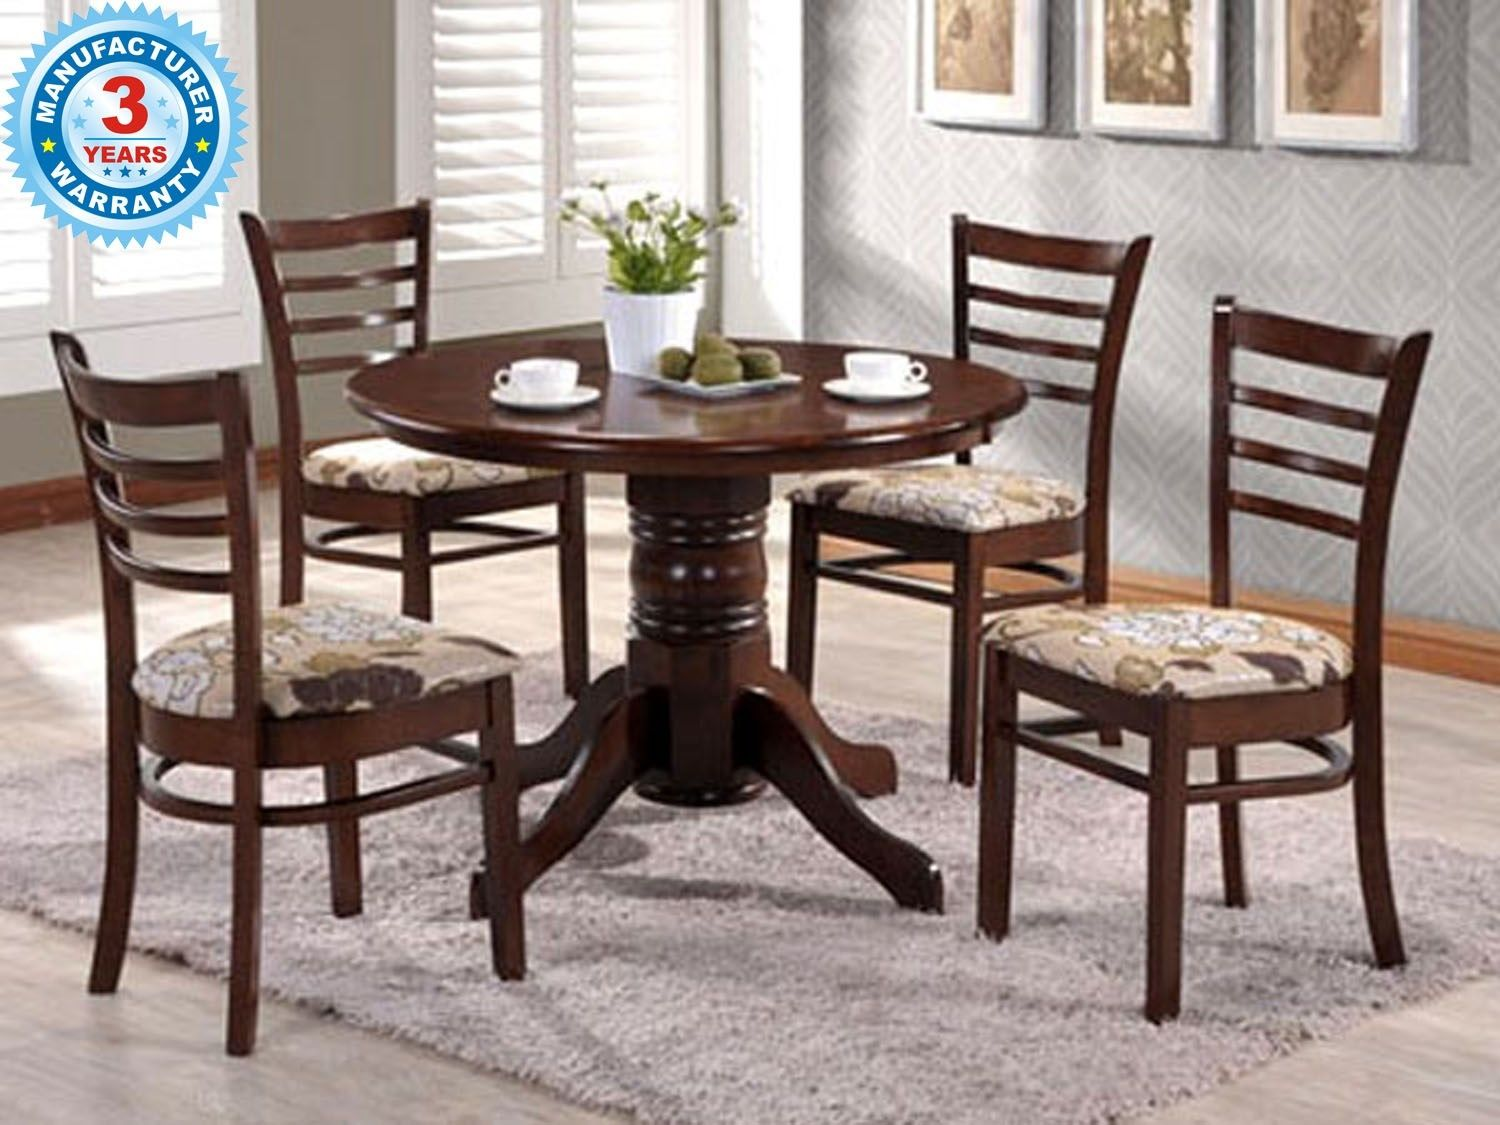 Dining Table Set Olx Dining Room Furniture Dining Table Chairs